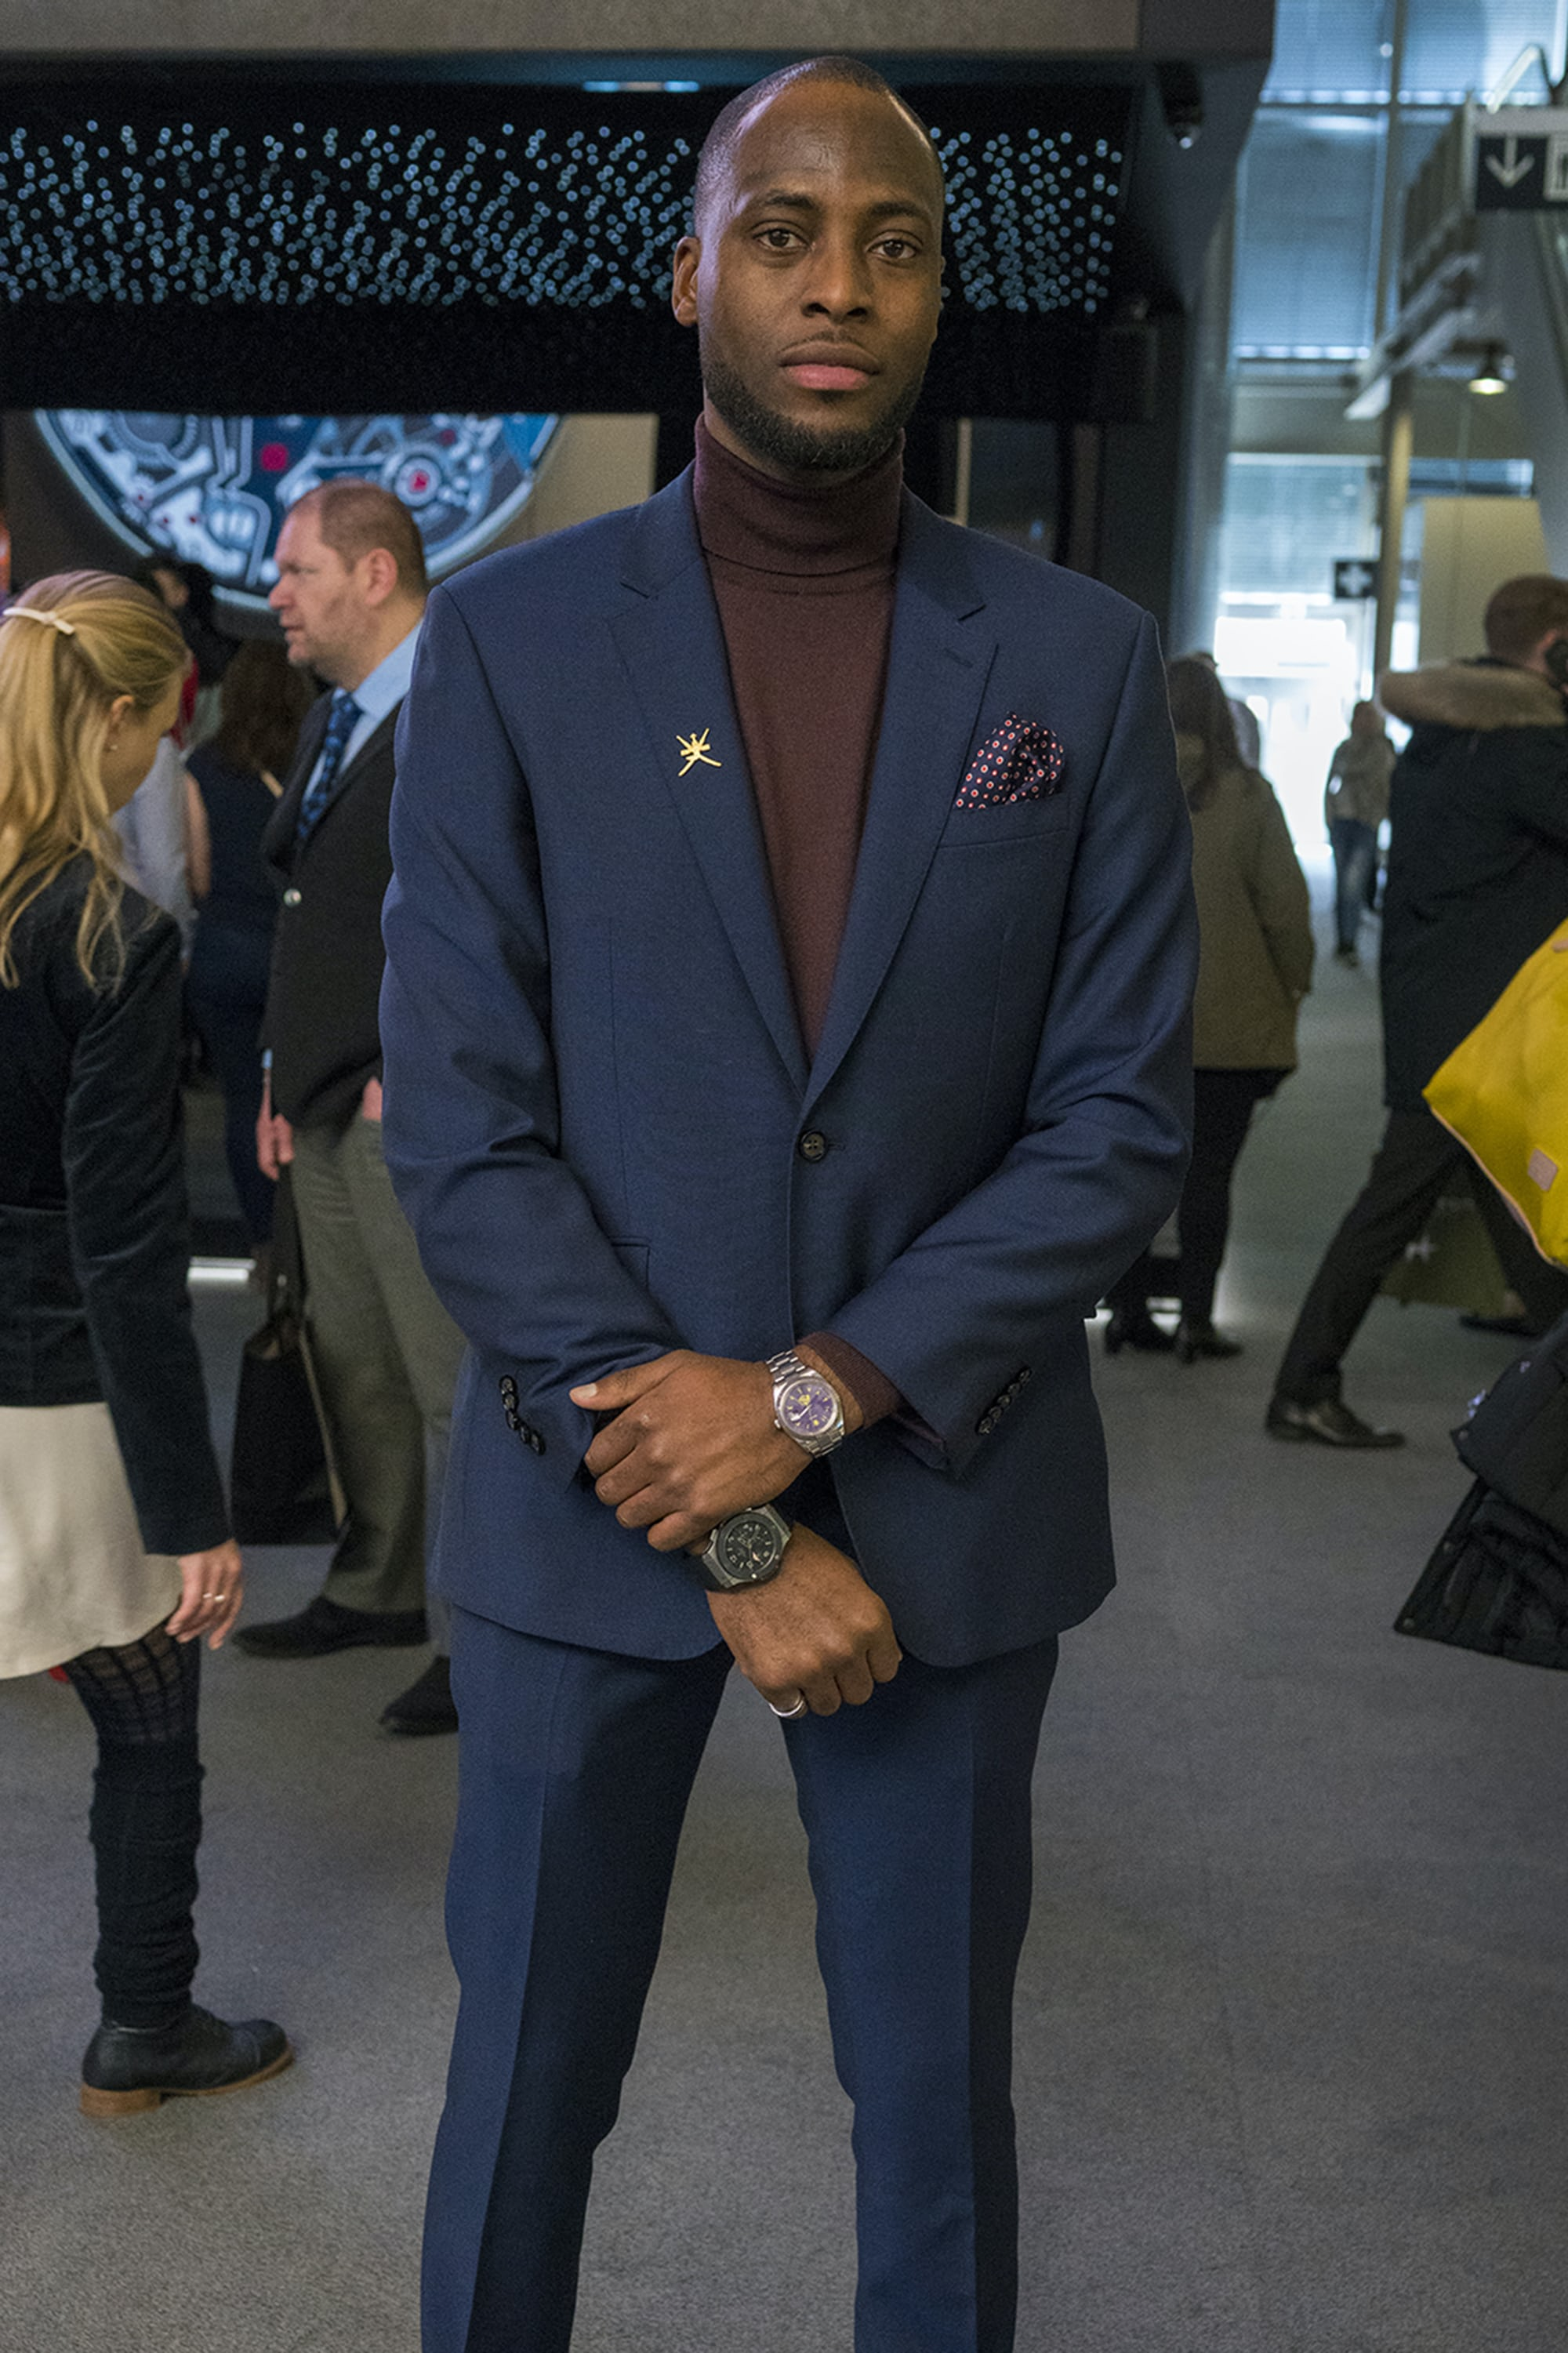 Photo Report: The Fashion And Watches Of Baselworld 2018 Photo Report: The Fashion And Watches Of Baselworld 2018 DSC00630 copy